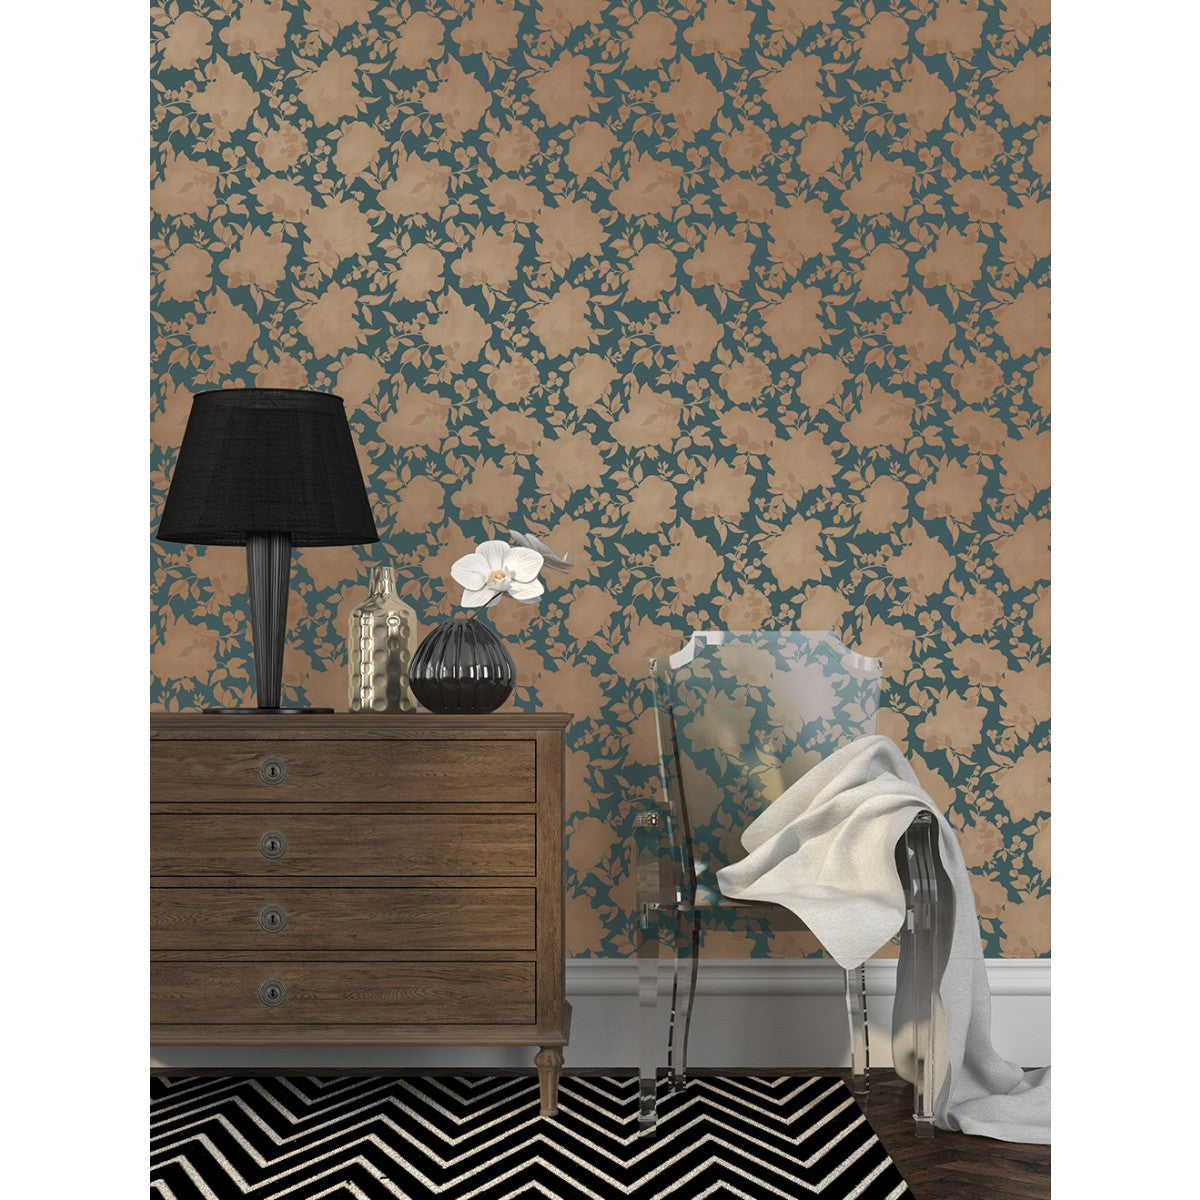 Silhouette Self Adhesive Wallpaper In Peacock Blue Gold Design By Te Burke Decor